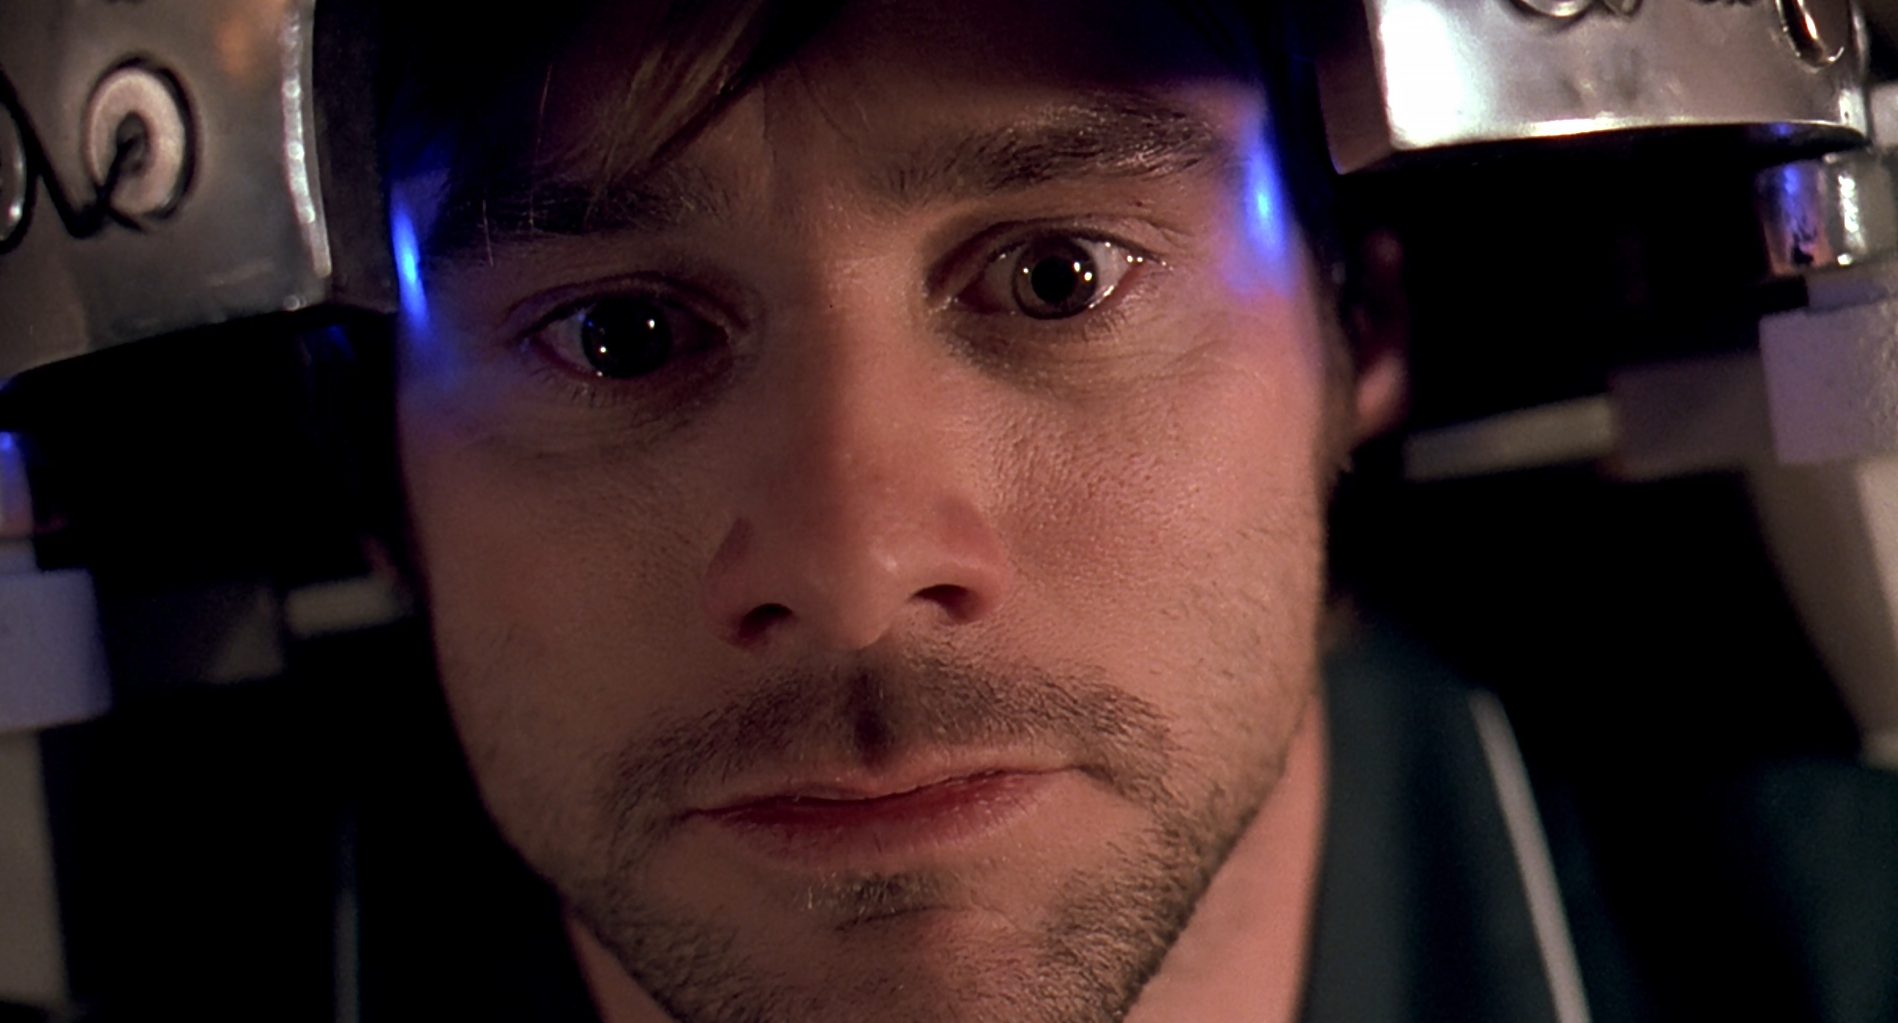 Eternal Sunshine of the Spotless Mind: Joel (Jim Carrey) has his memories erased